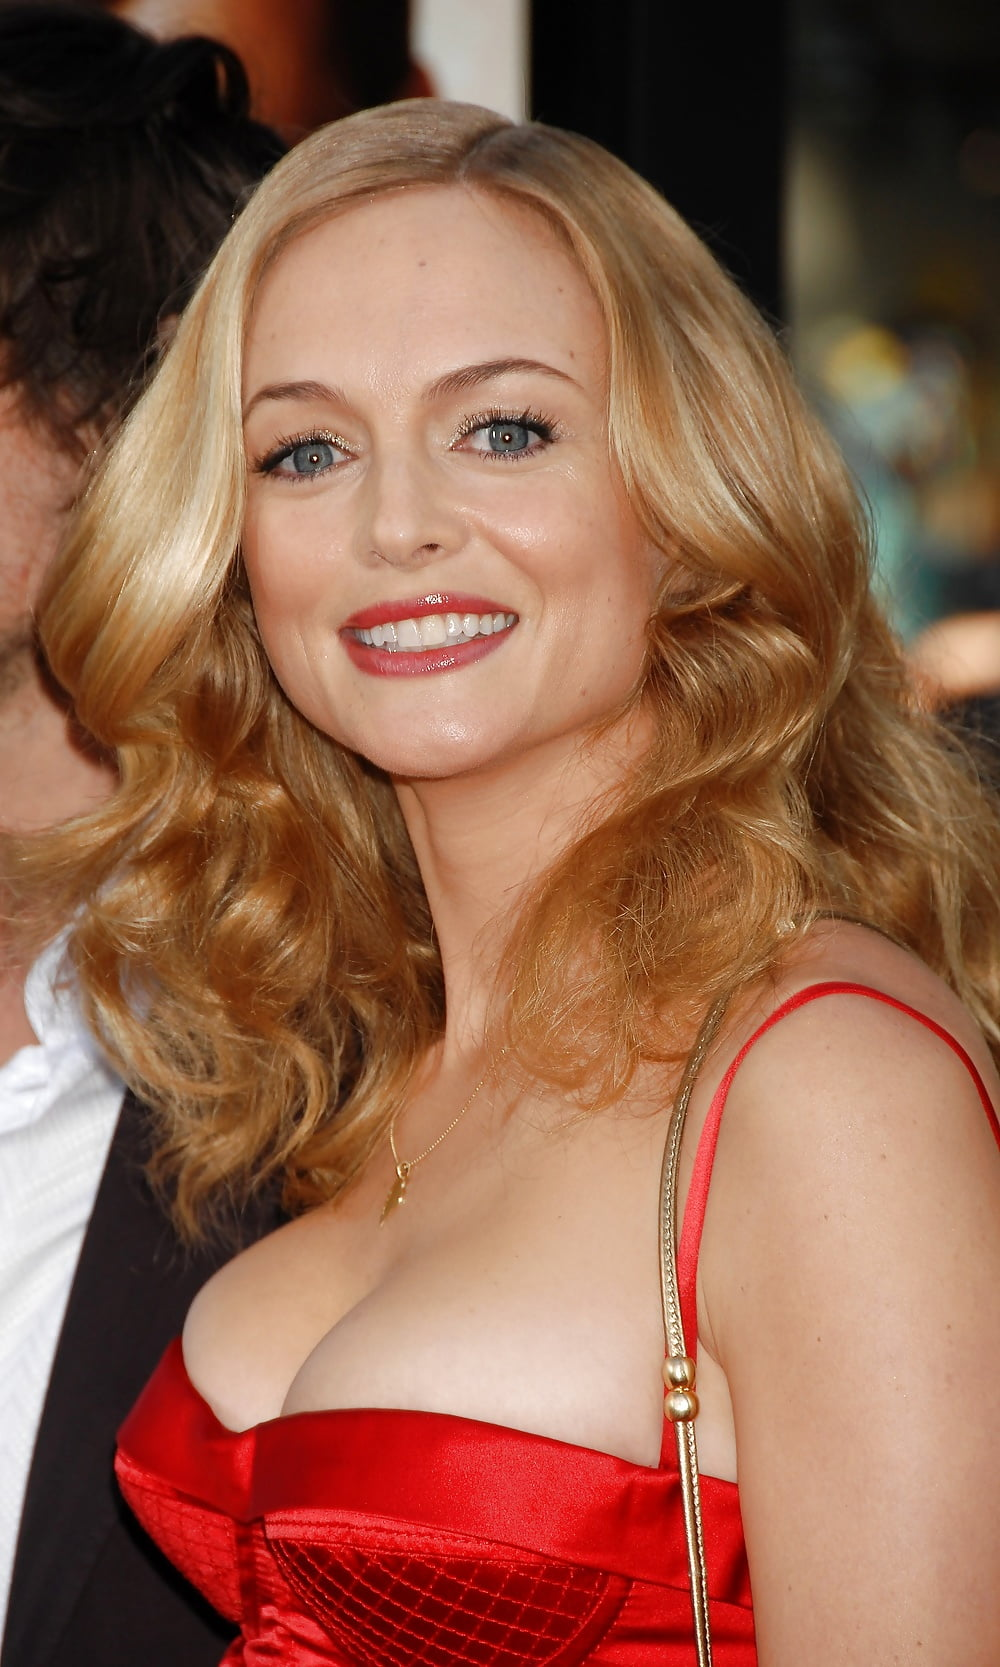 Heather Graham's Bikini Bod In Rio Is No Match For Ken Jeong's Physique